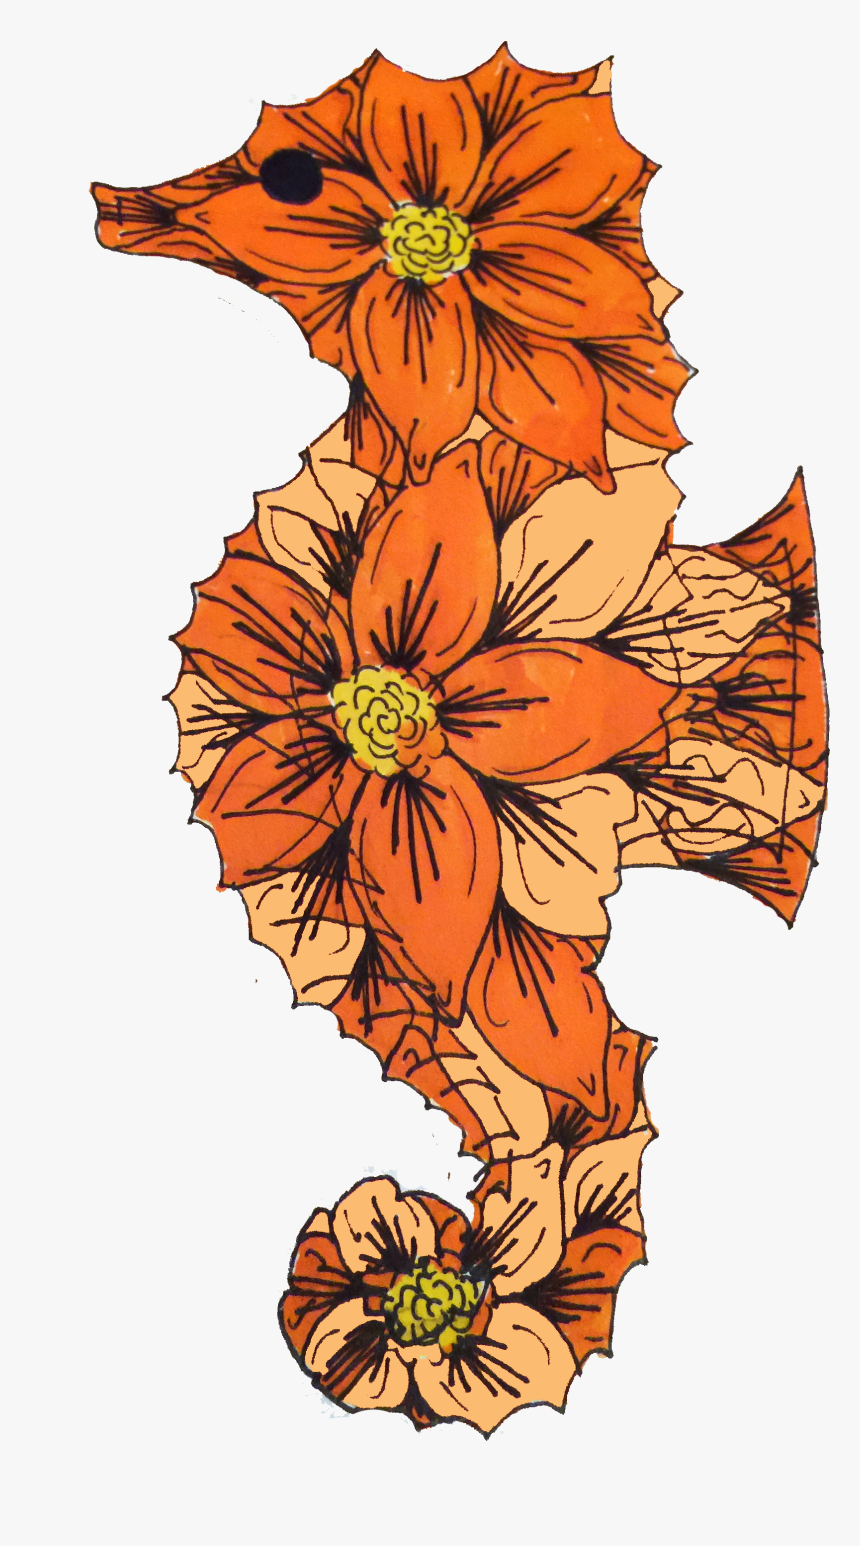 Transparent Aesthetic Flower Png Aesthetic Drawings Easy Flower Png Download Is Free Transparent Png Image Download And Use It For Your Personal Or N In 2020 Portret